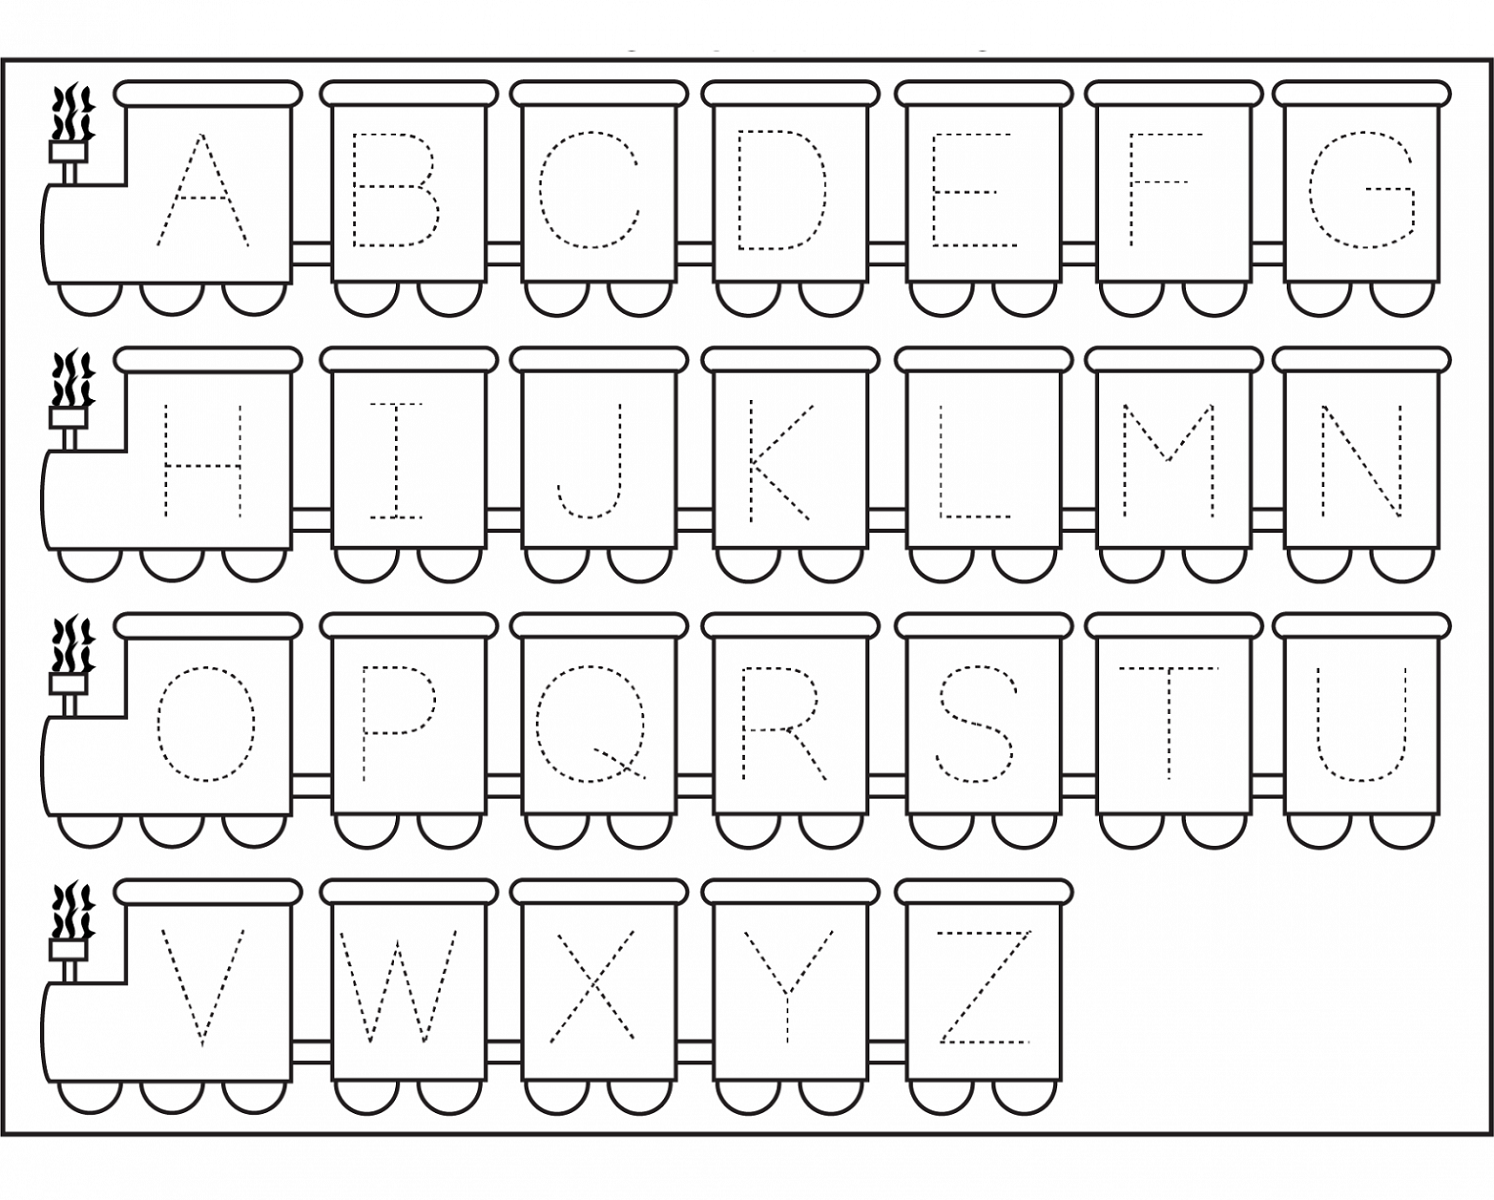 abc tracing sheets for school